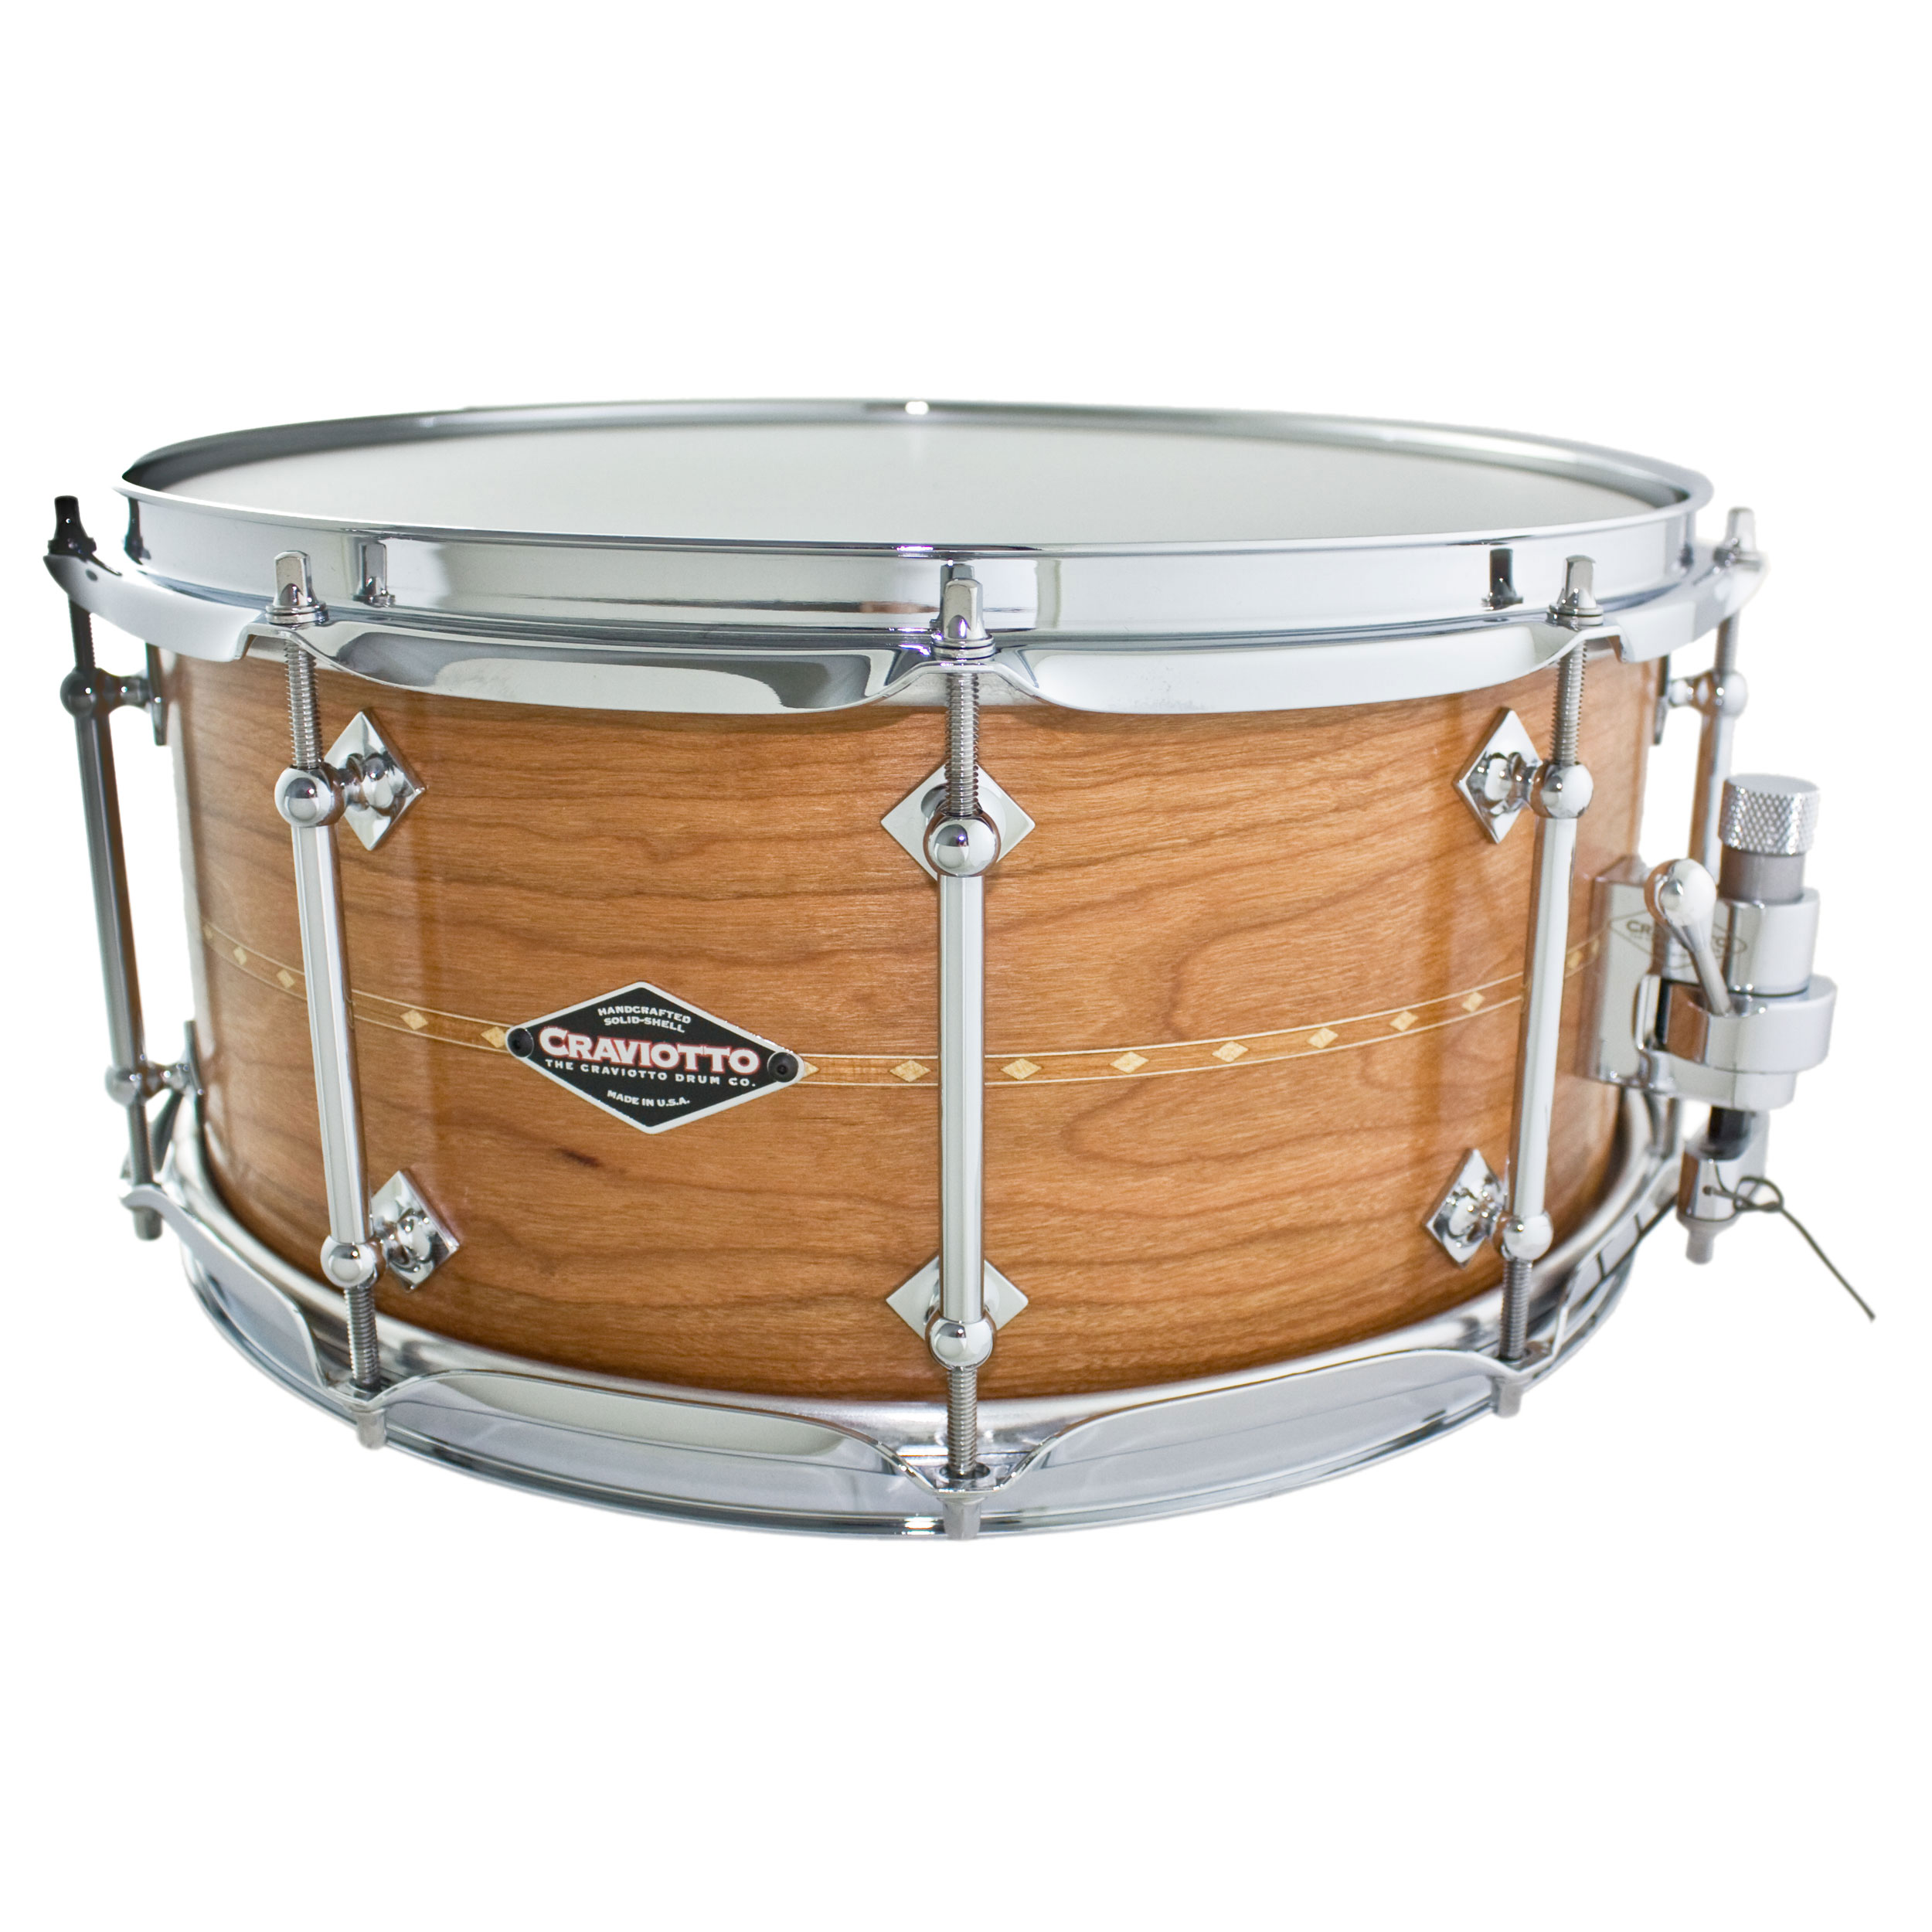 "Craviotto 6.5"" x 14"" Custom Shop Solid Shell Cherry Snare Drum with Inlay"